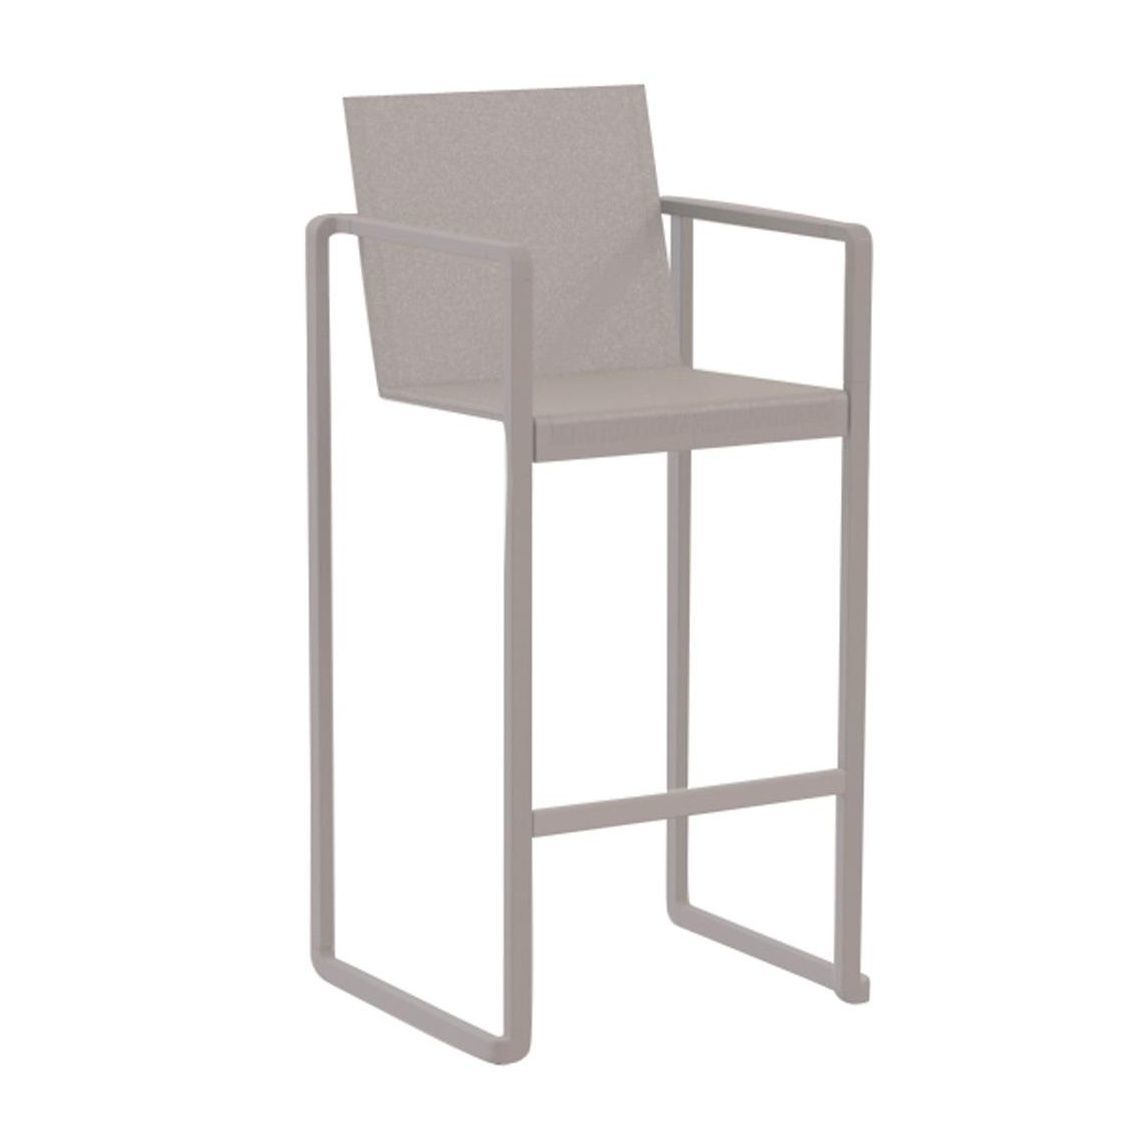 ... Royal Botania   Alura Bar Stool   Taupe/Batyline ...